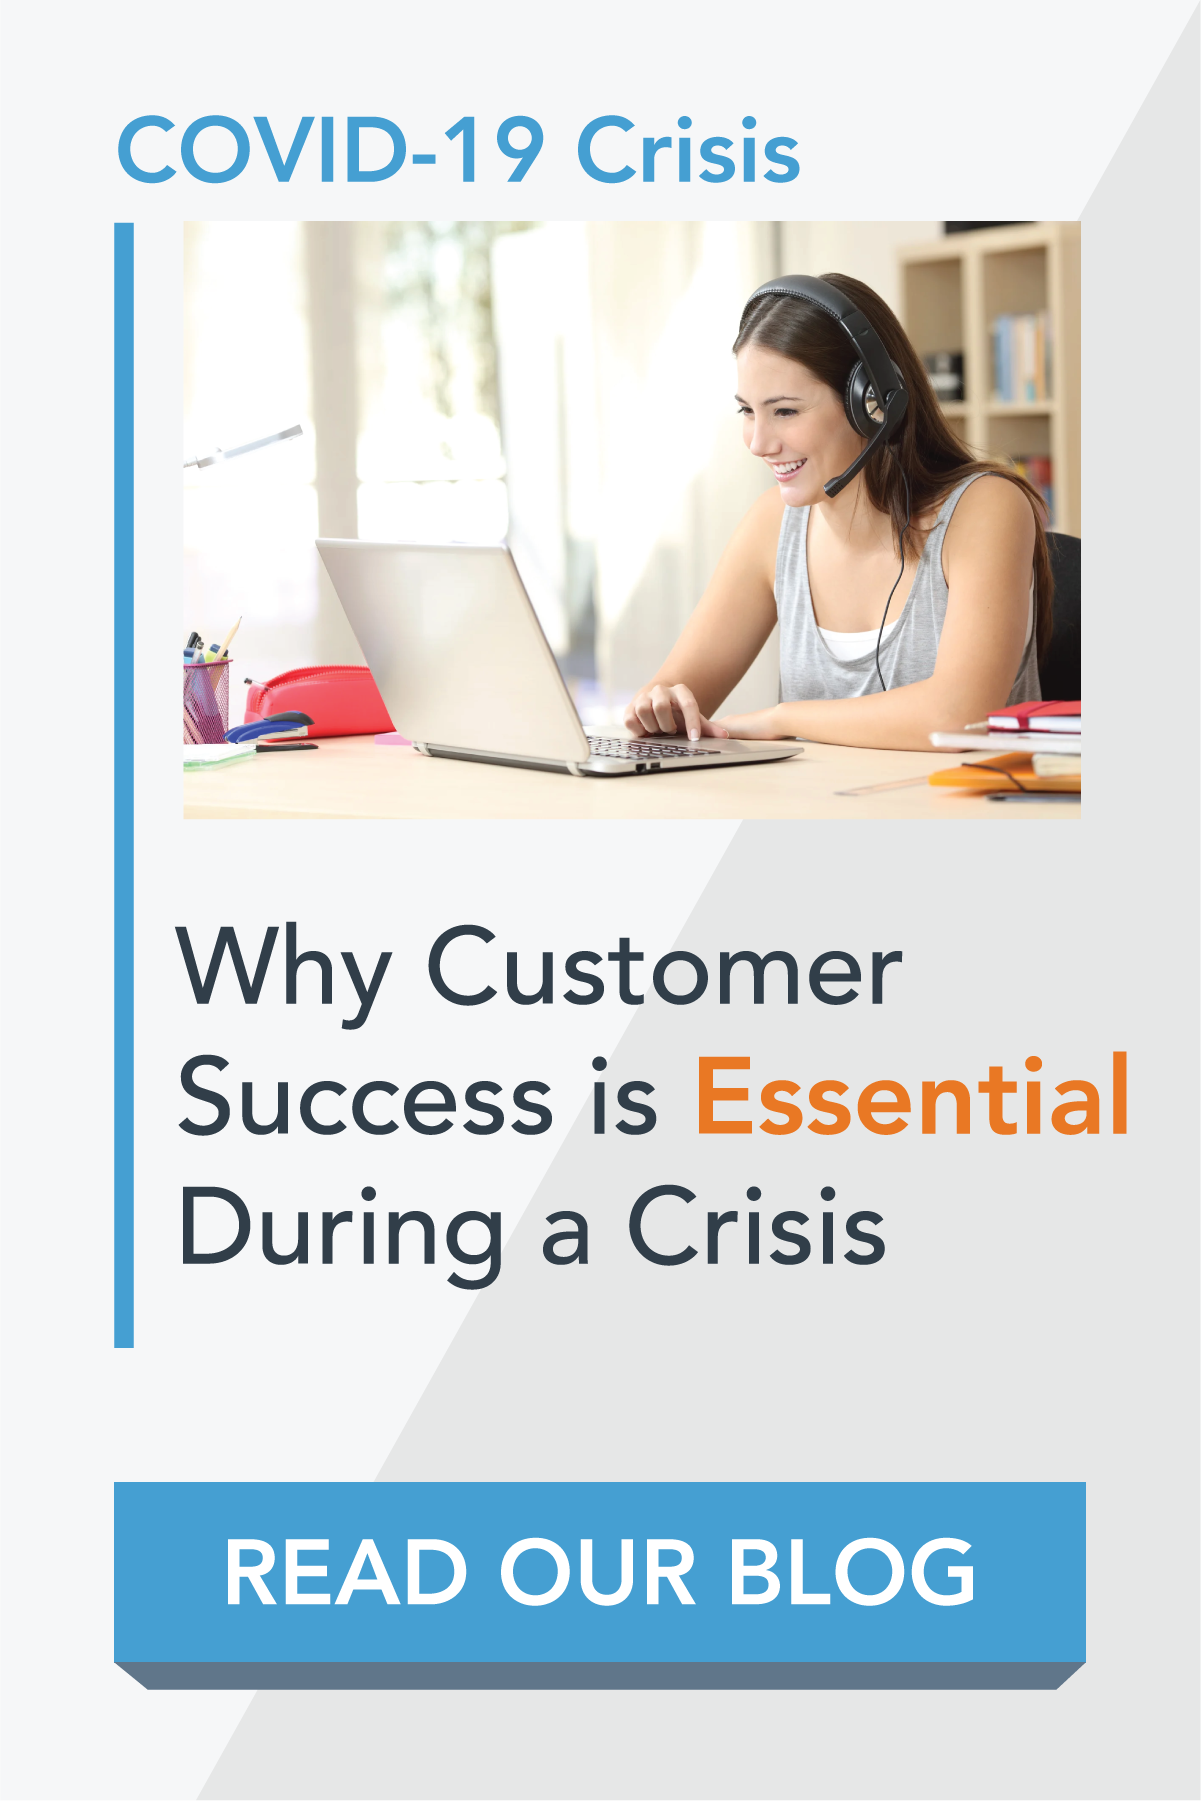 Customer Success Essential During Crisis